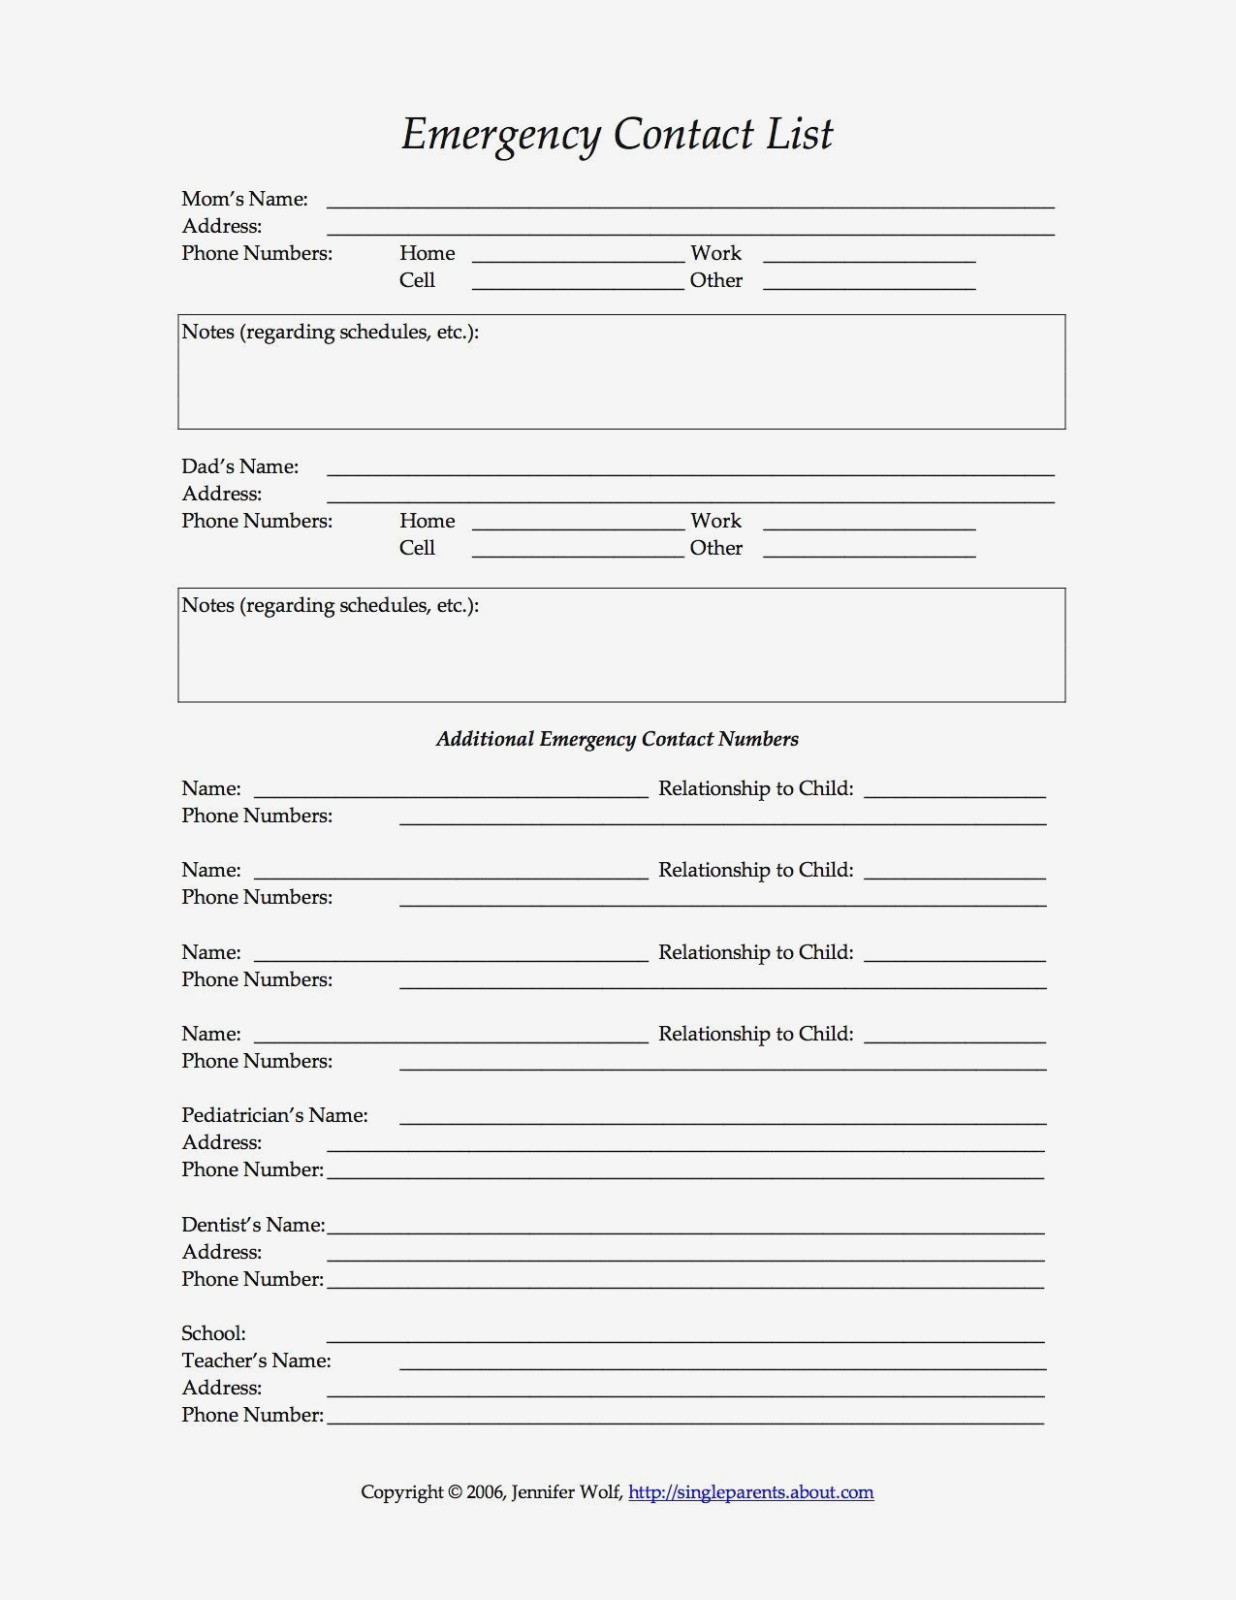 13 Free Printable Forms For Single Parents | Daycare: Recipes, Forms - Free Printable Daycare Forms